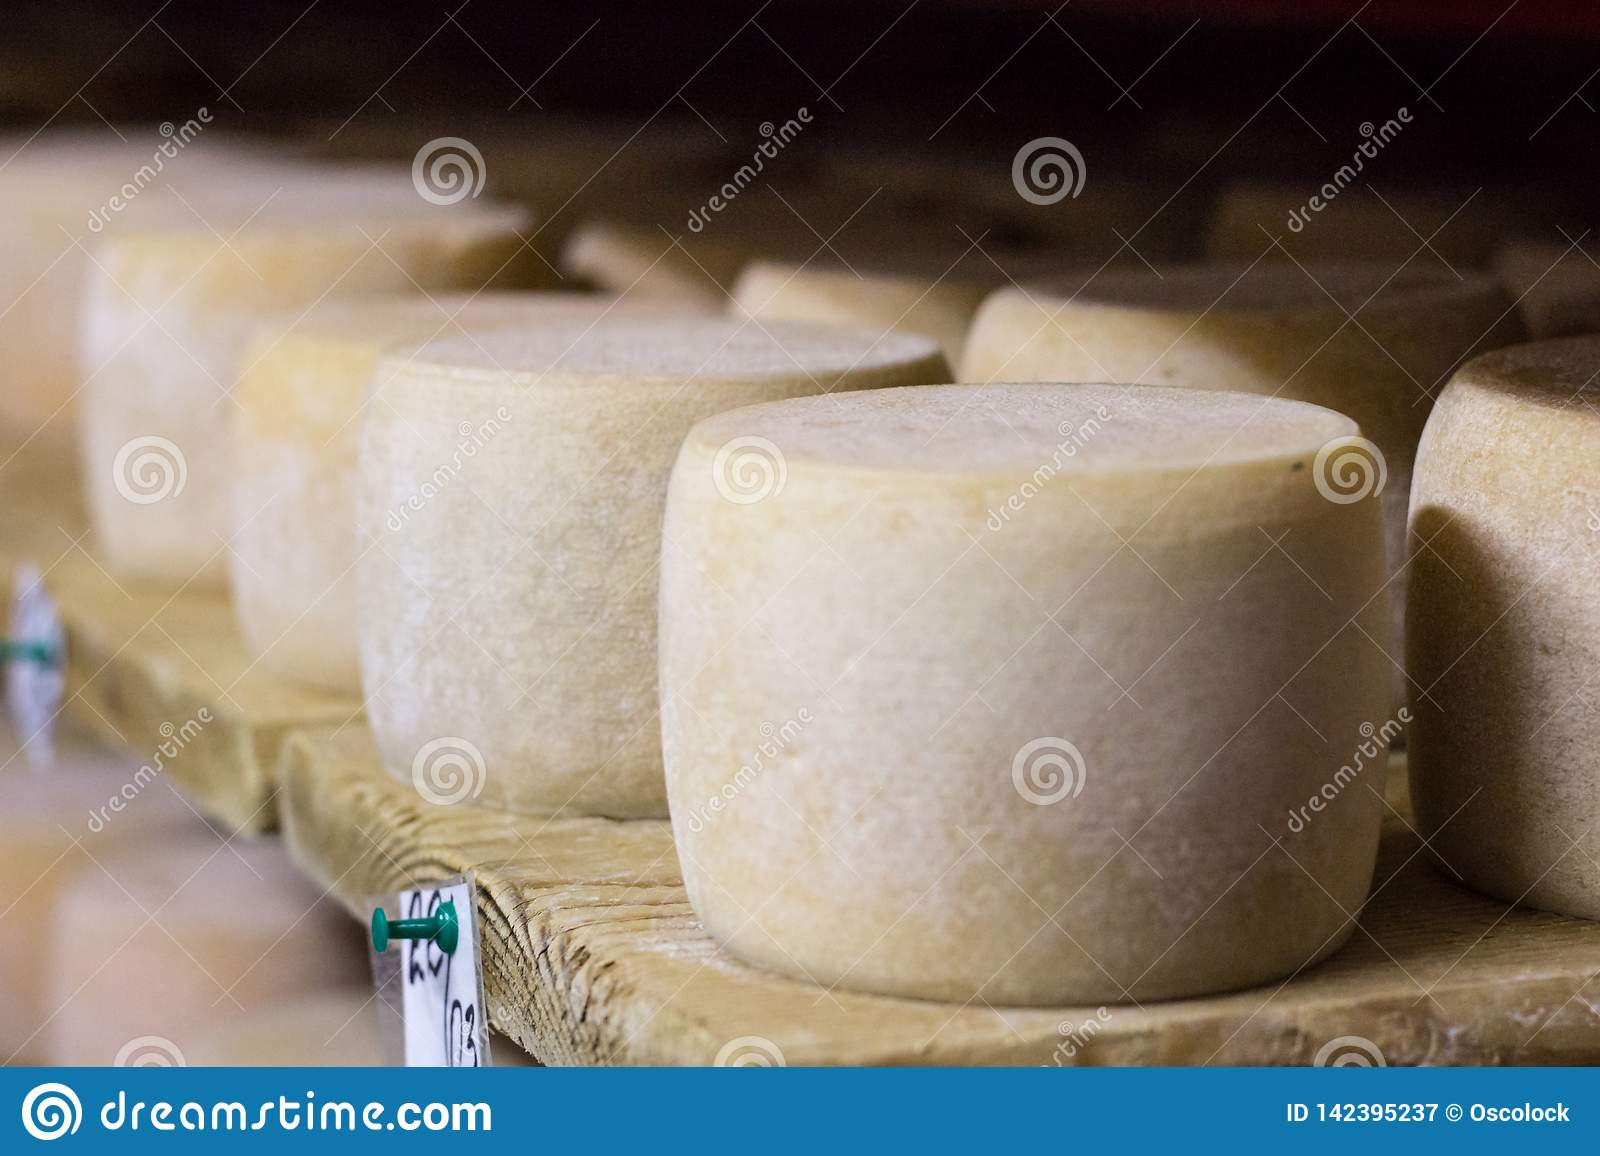 Dairy food production farm house with white cheese heads riping on shelves